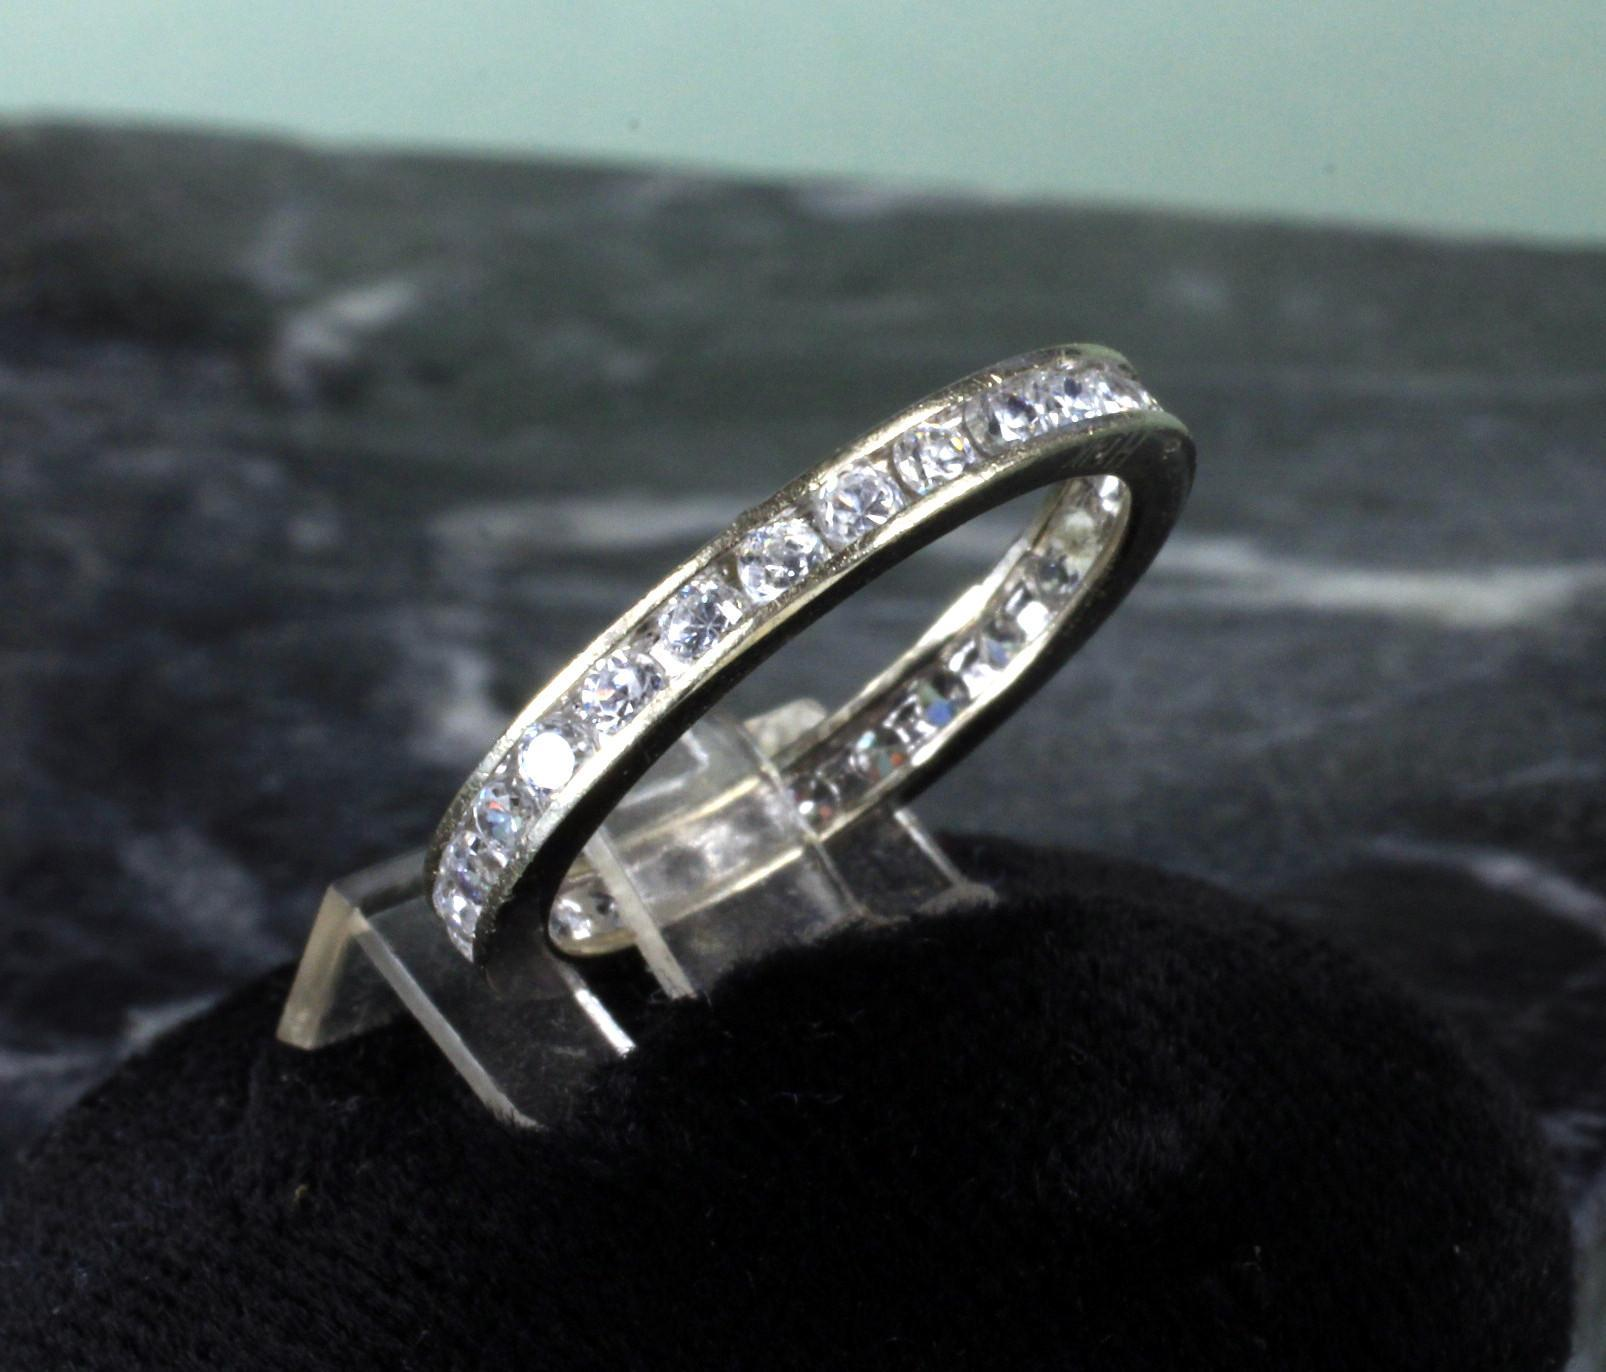 14K White Gold Diamond Eternity Band - 0.75 Carat of Diamonds